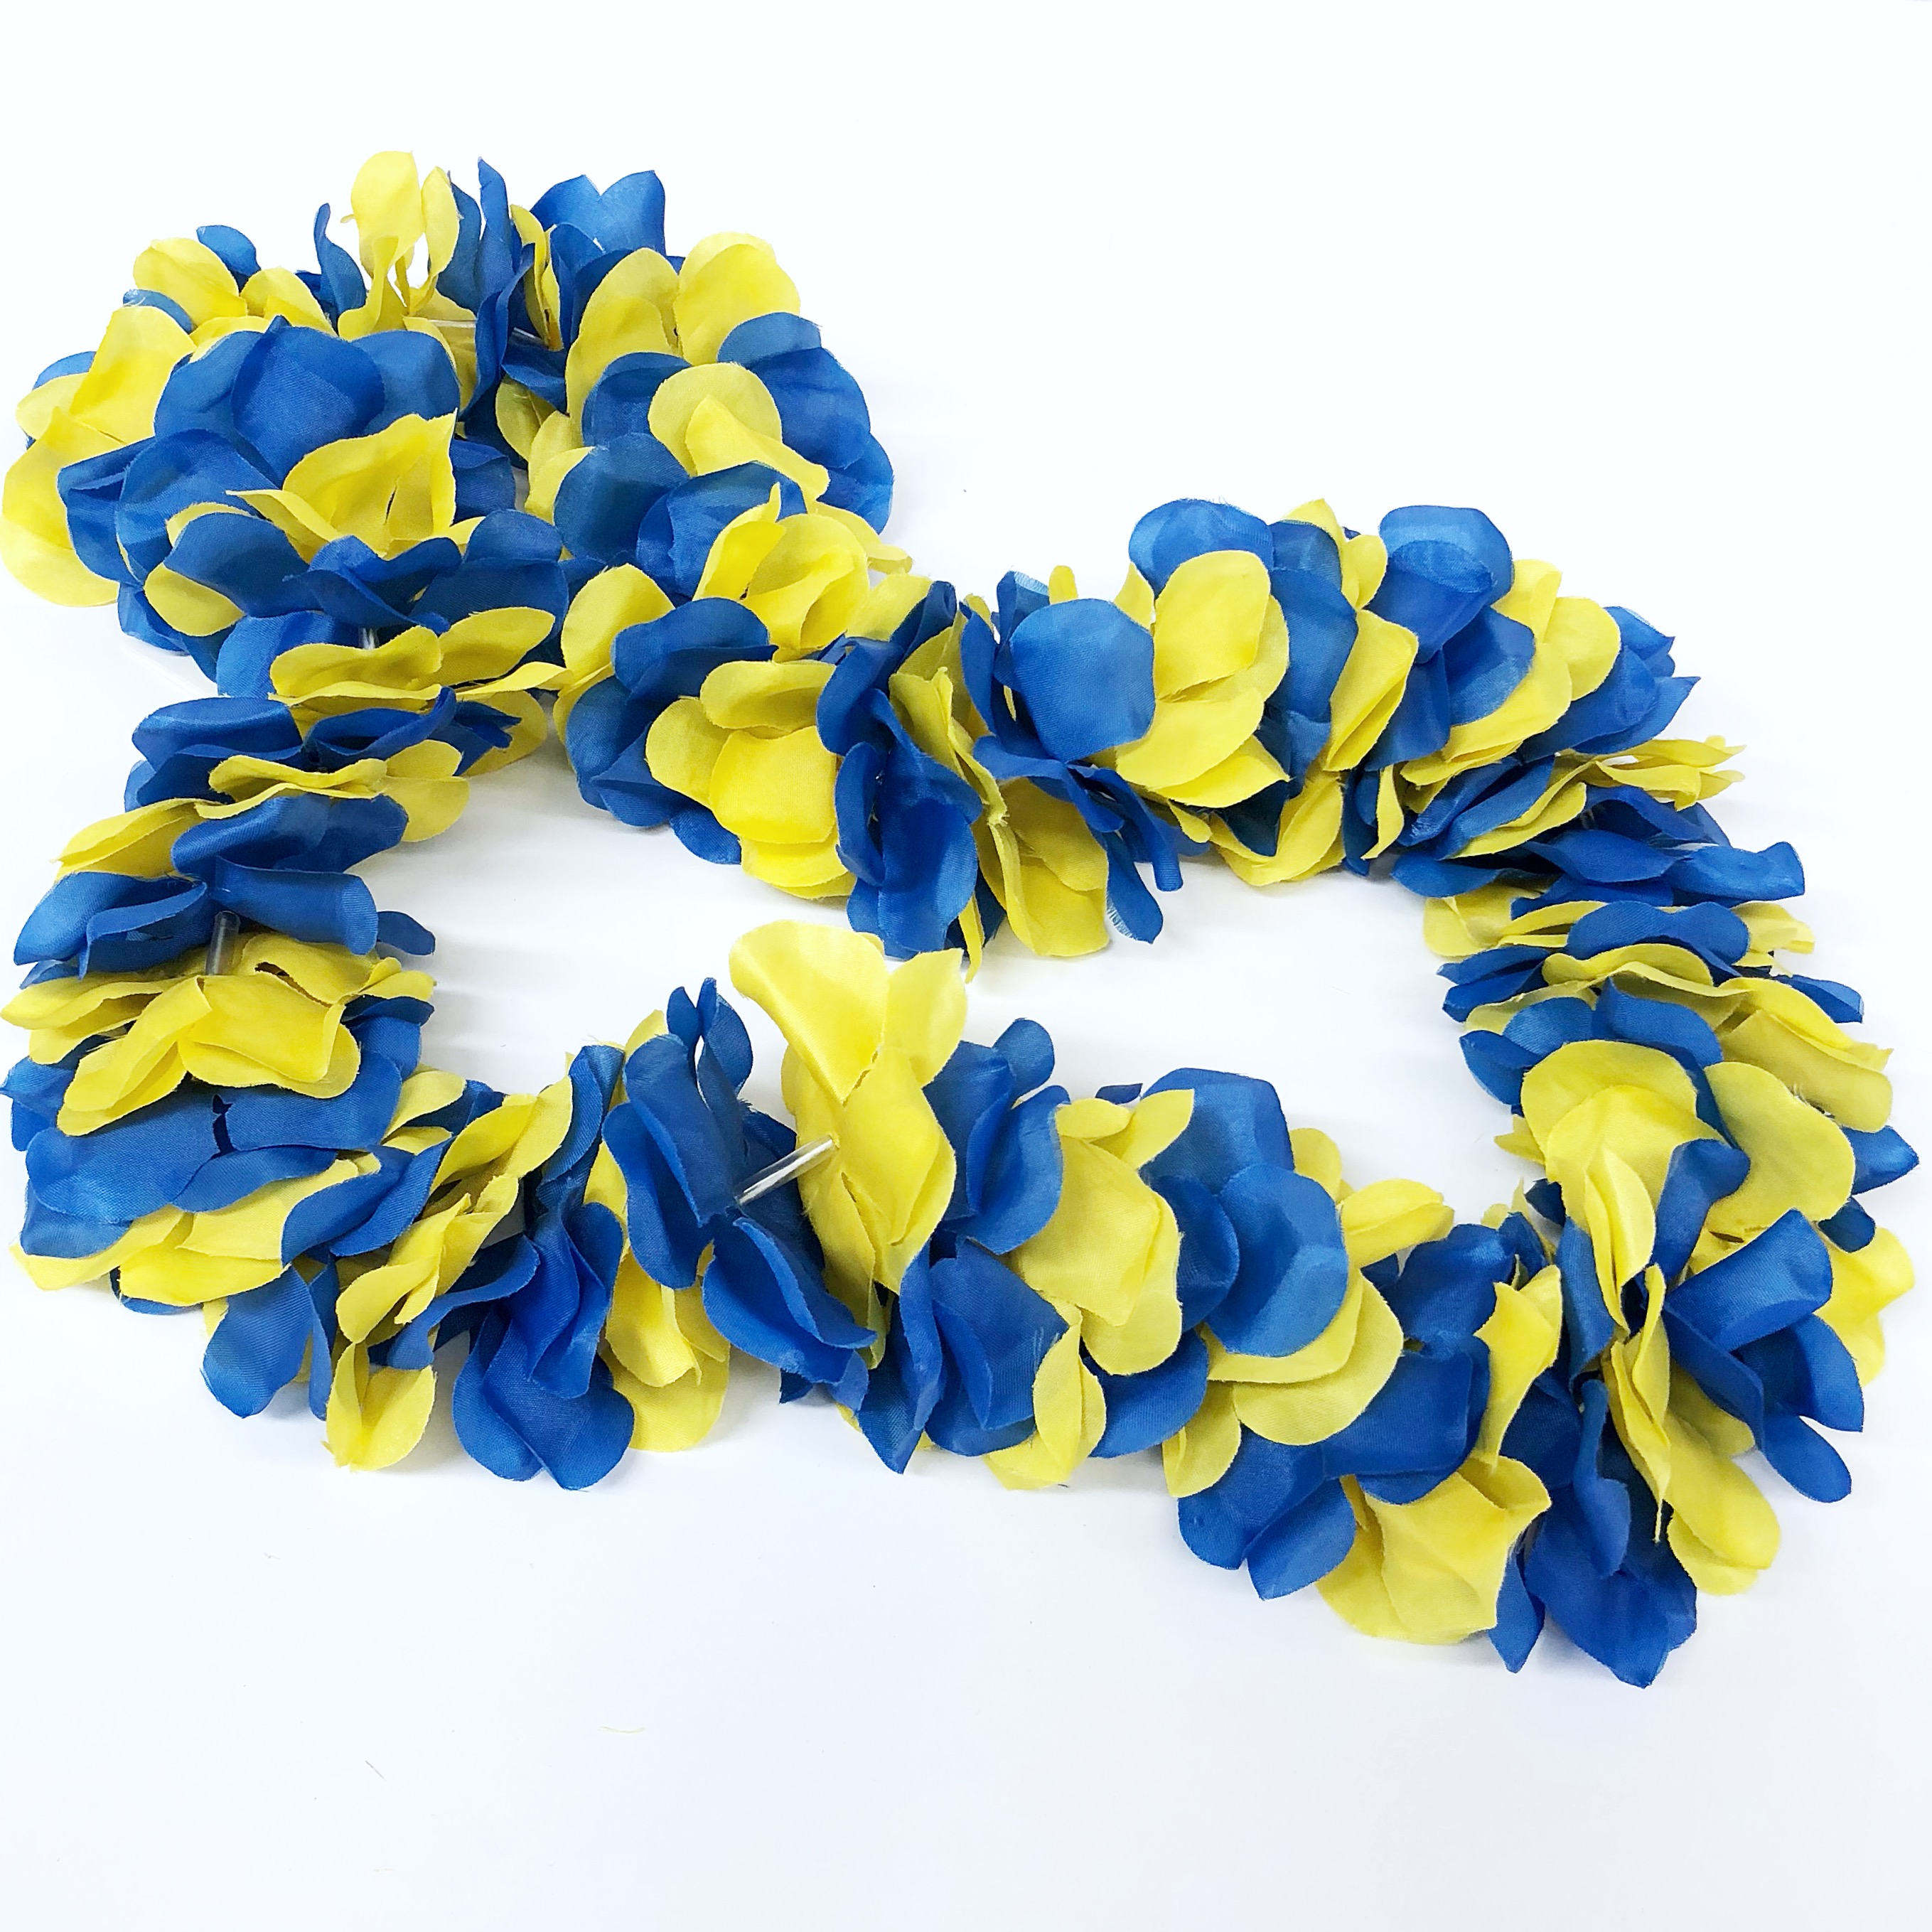 University Of Delaware Blue And Yellow Flower Lei National 5 And 10